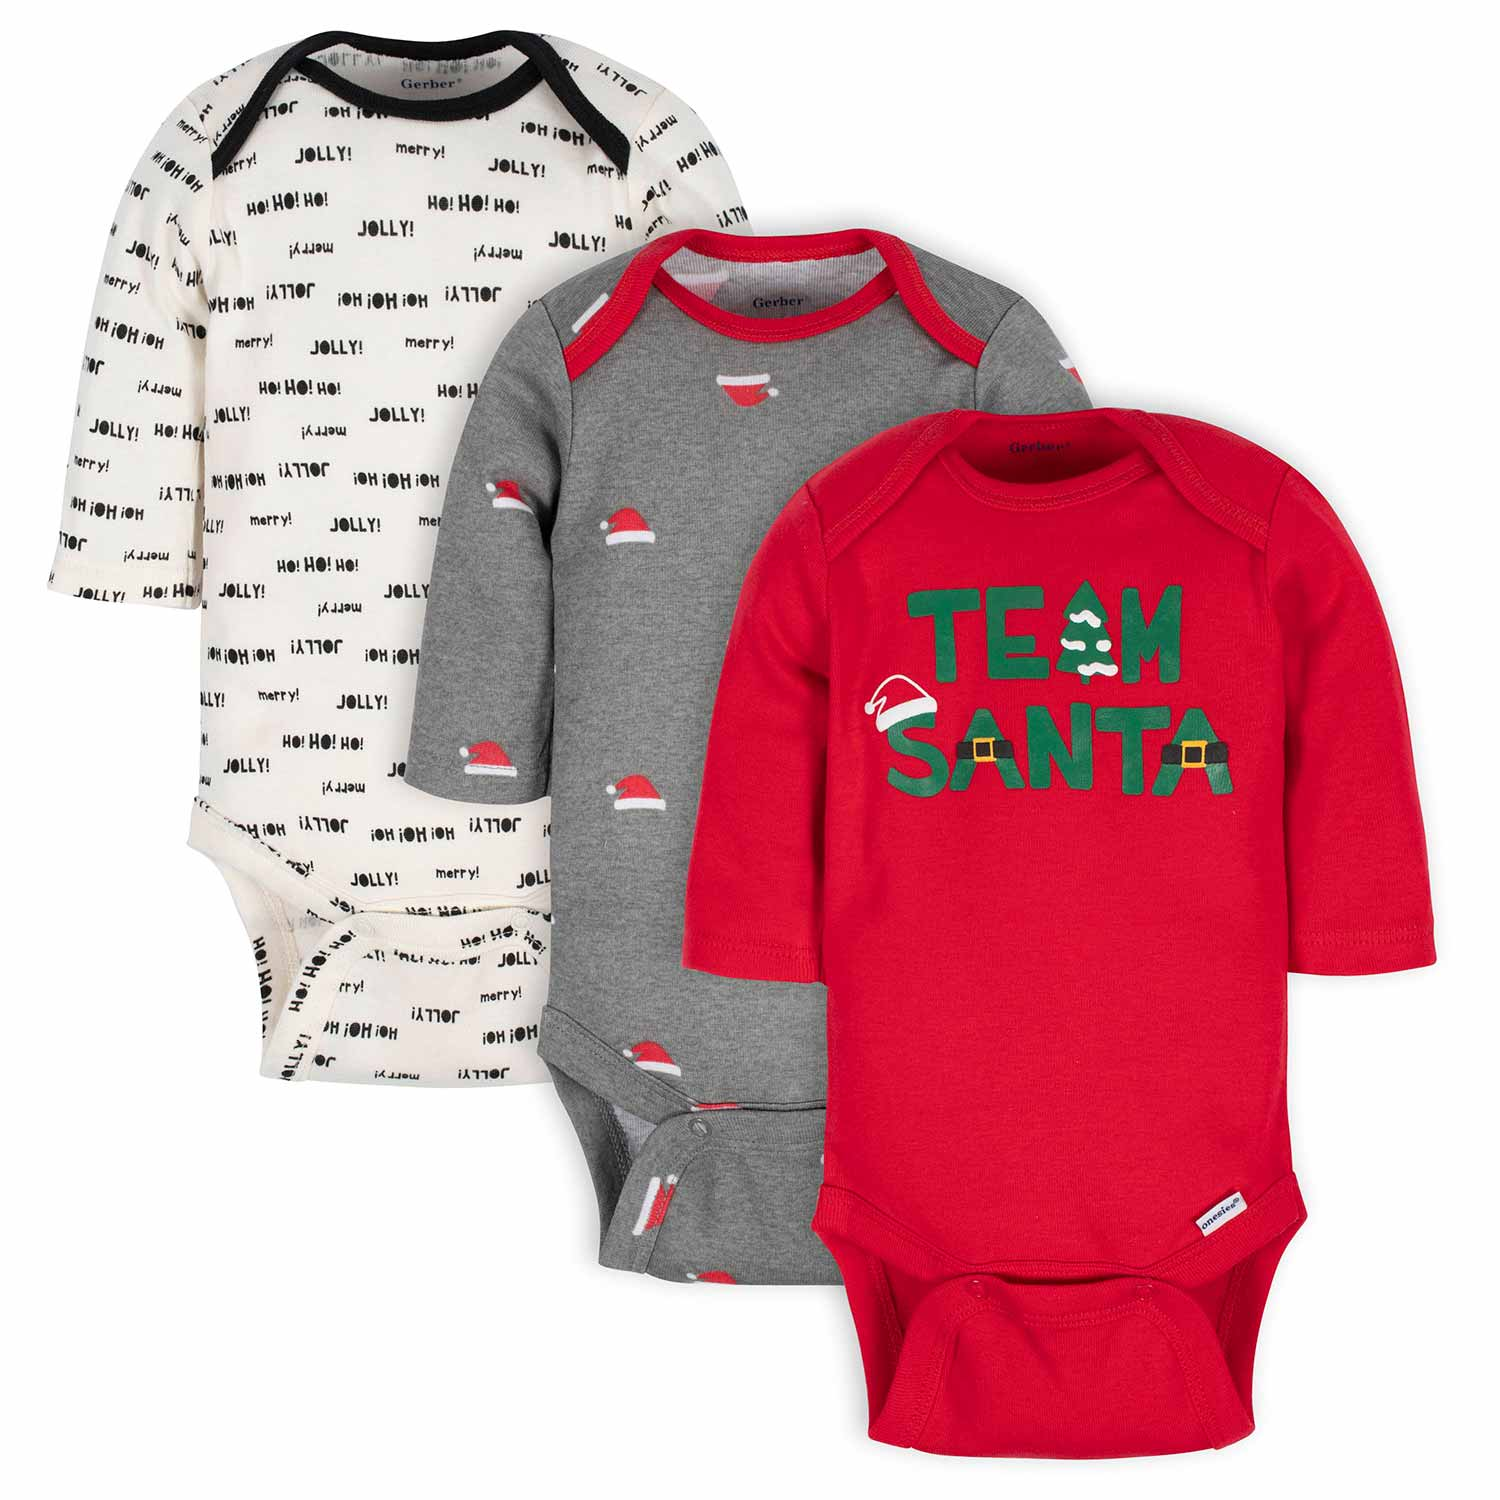 Gerber® 3-Pack Baby Team Santa Long Sleeve Onesies® Bodysuits